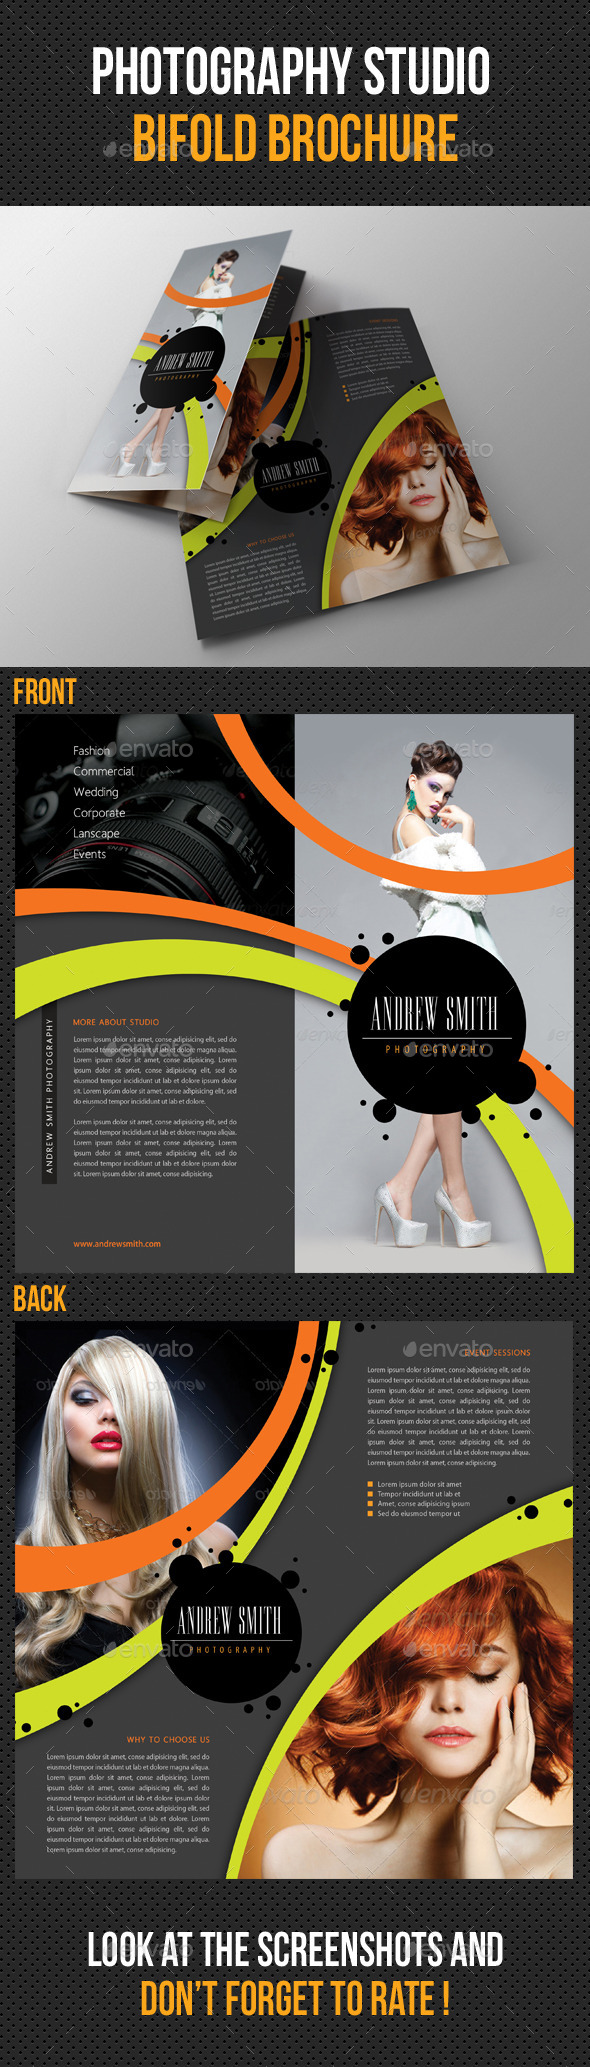 GraphicRiver Photography Studio Bifold Brochure 04 10061095